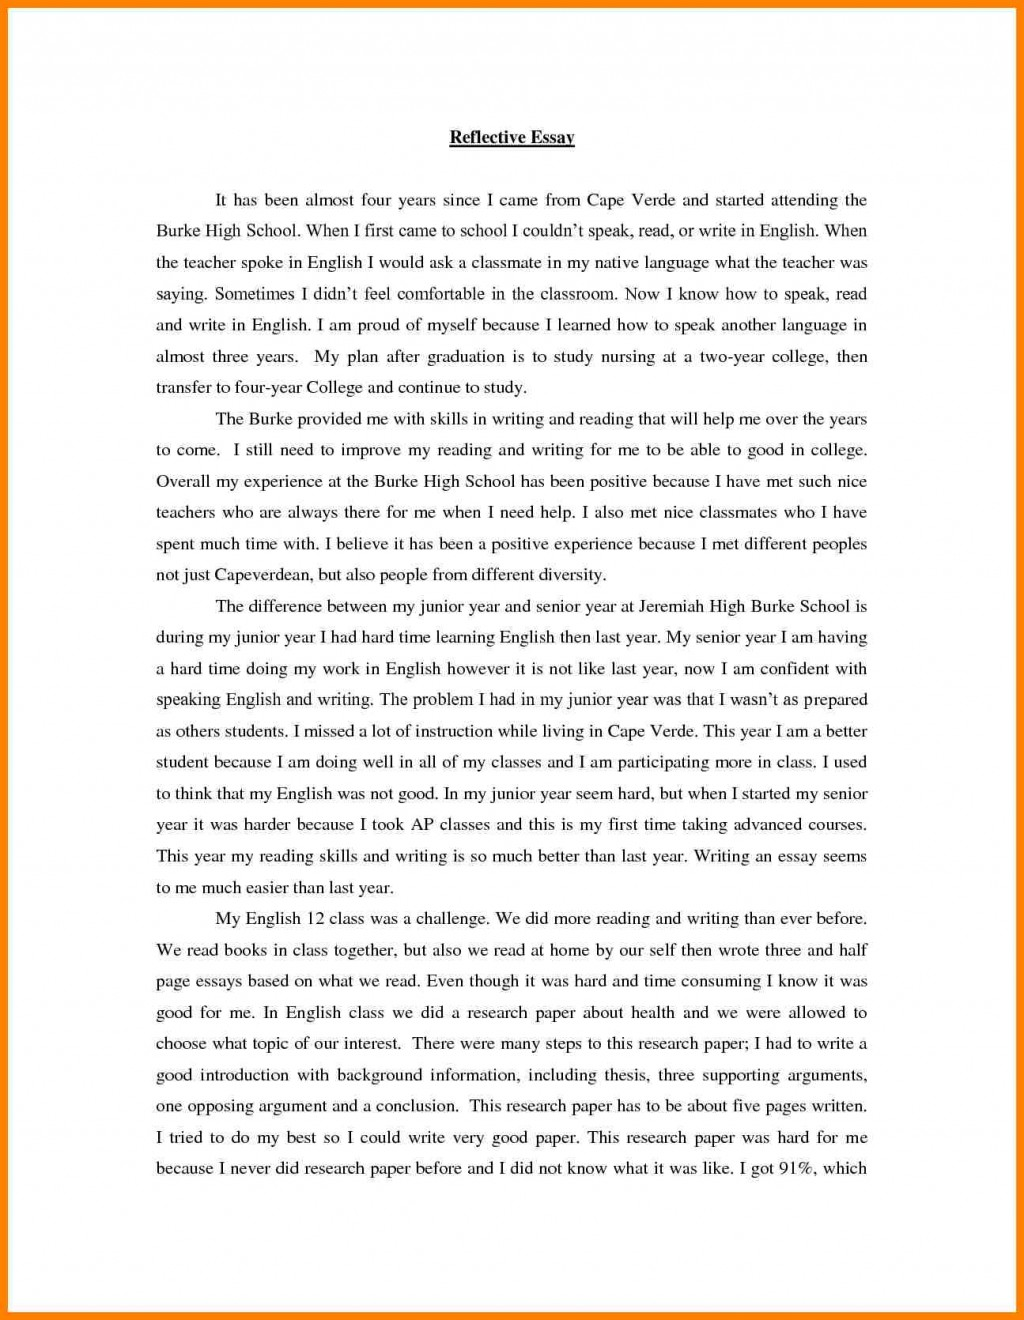 003 Essay Example Speak Brilliant Ideas Of Writing Reflection Printable Bill Lading Short Form Rf English Wonderful Conclusion Thesis Titles Large